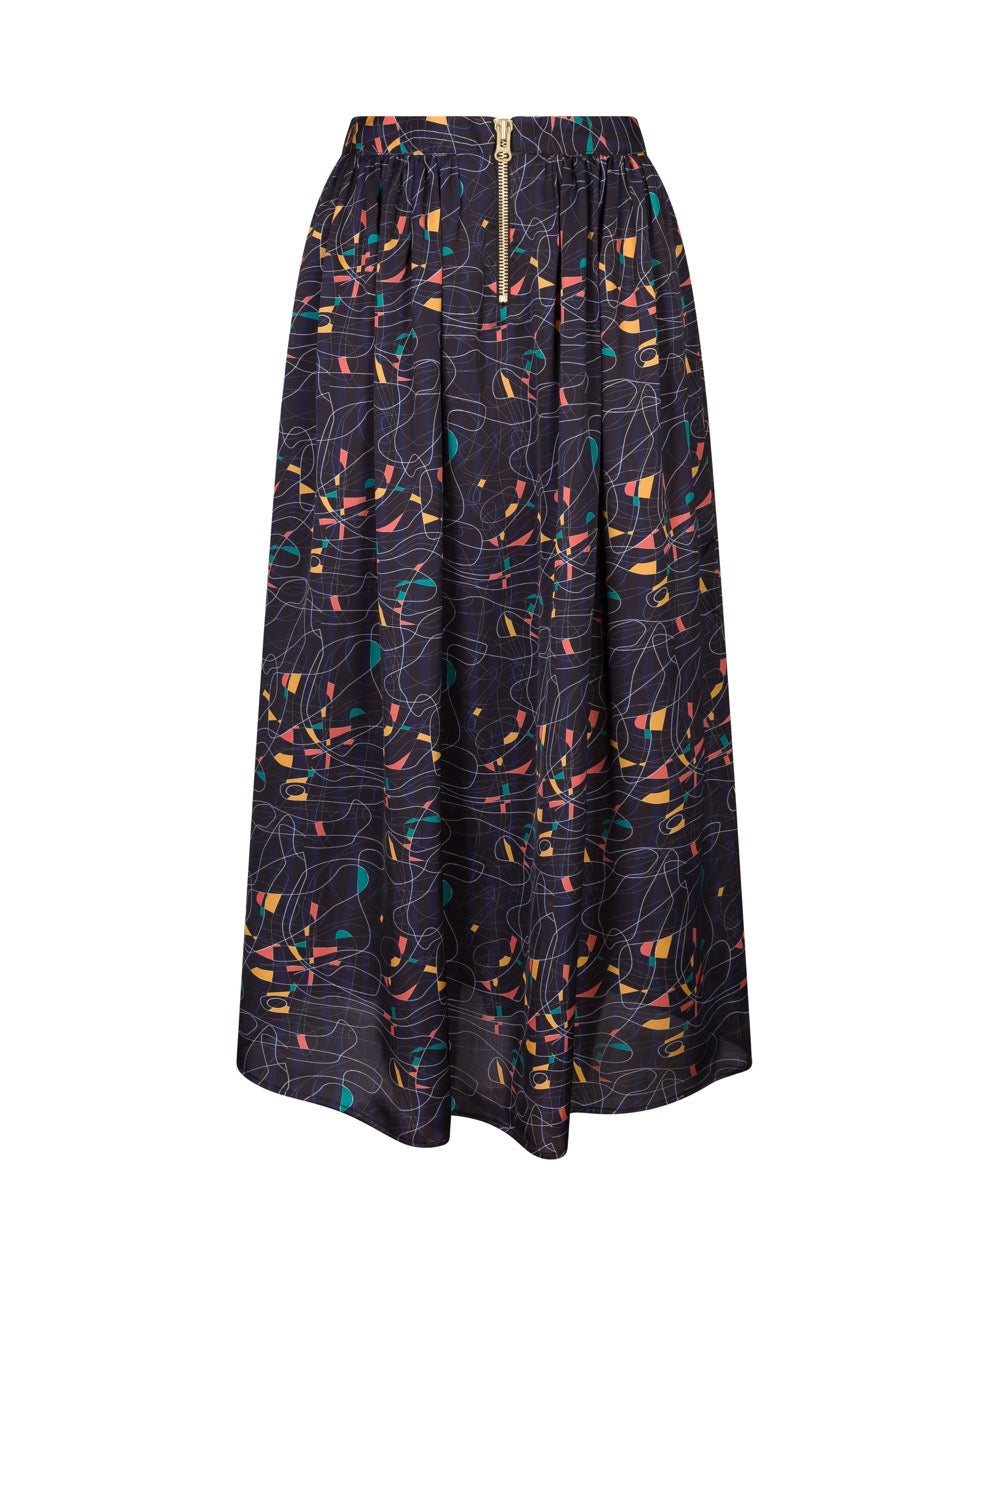 Orso skirt in reflections print